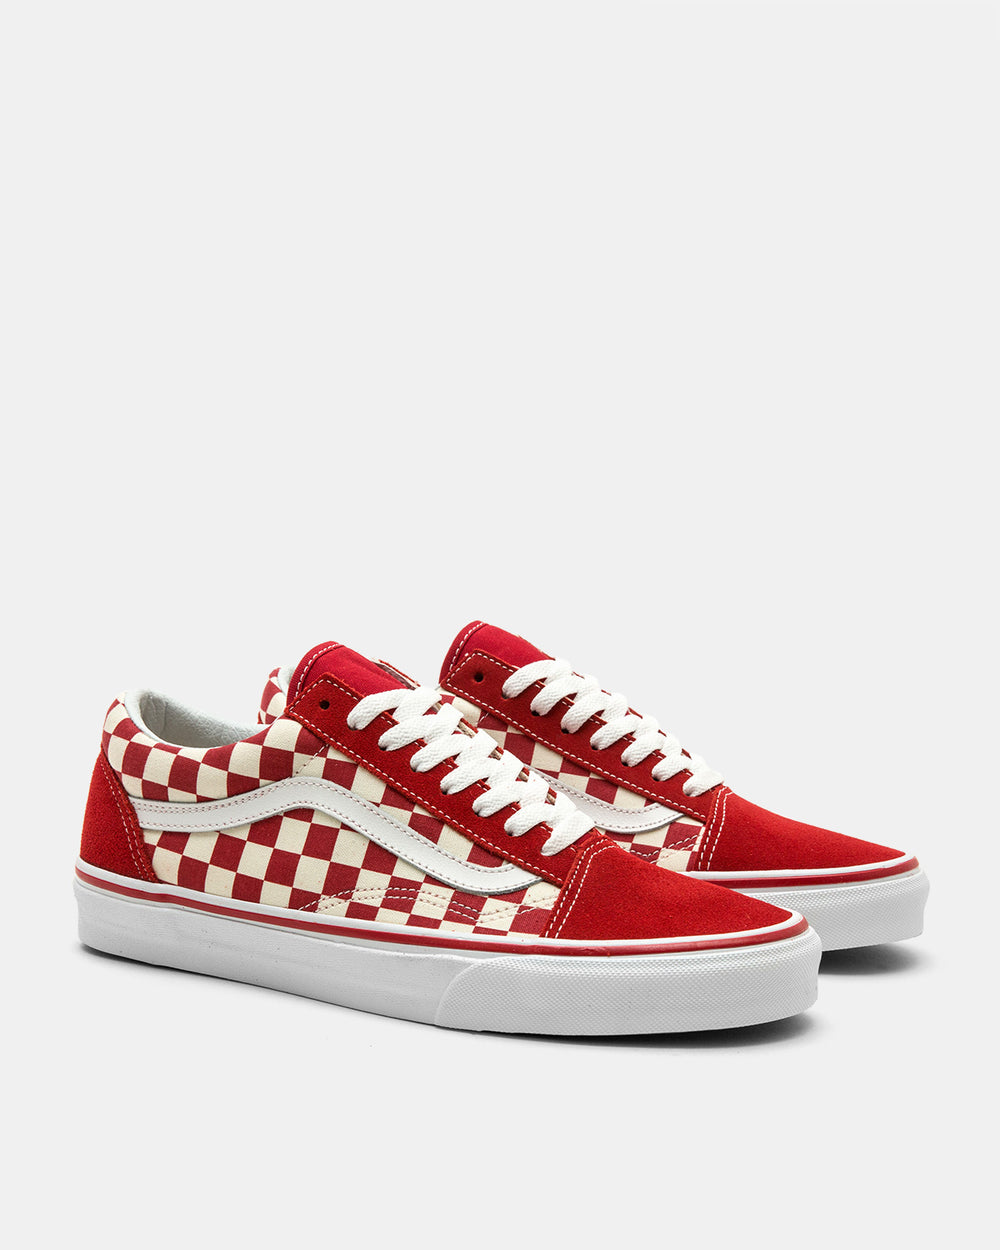 Vans - Old Skool 'Primary Check' (Racing Red | White)